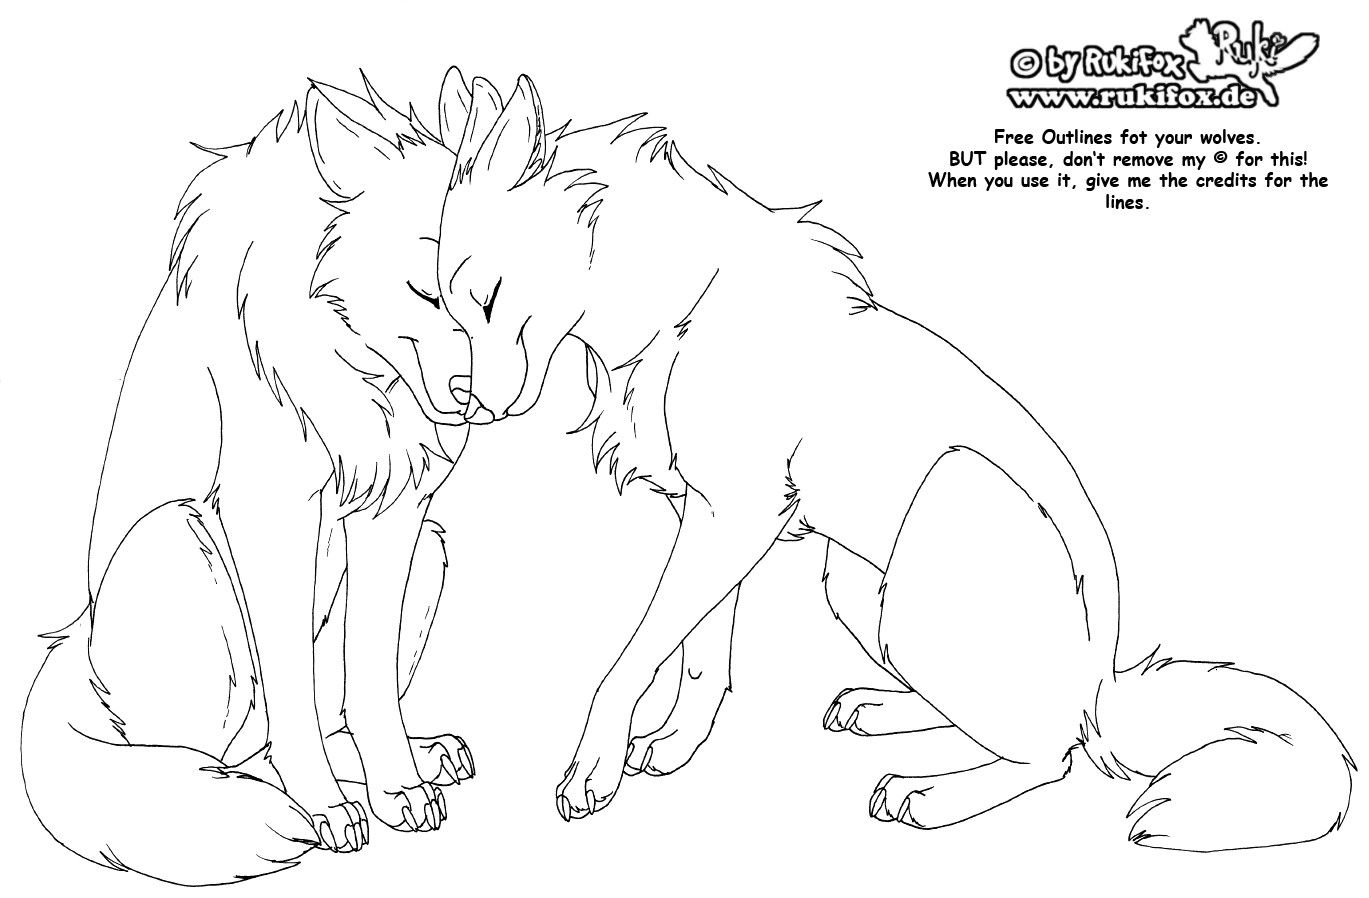 wolves_free_outline_by_rukifox.jpg (1369×898) Cute wolf